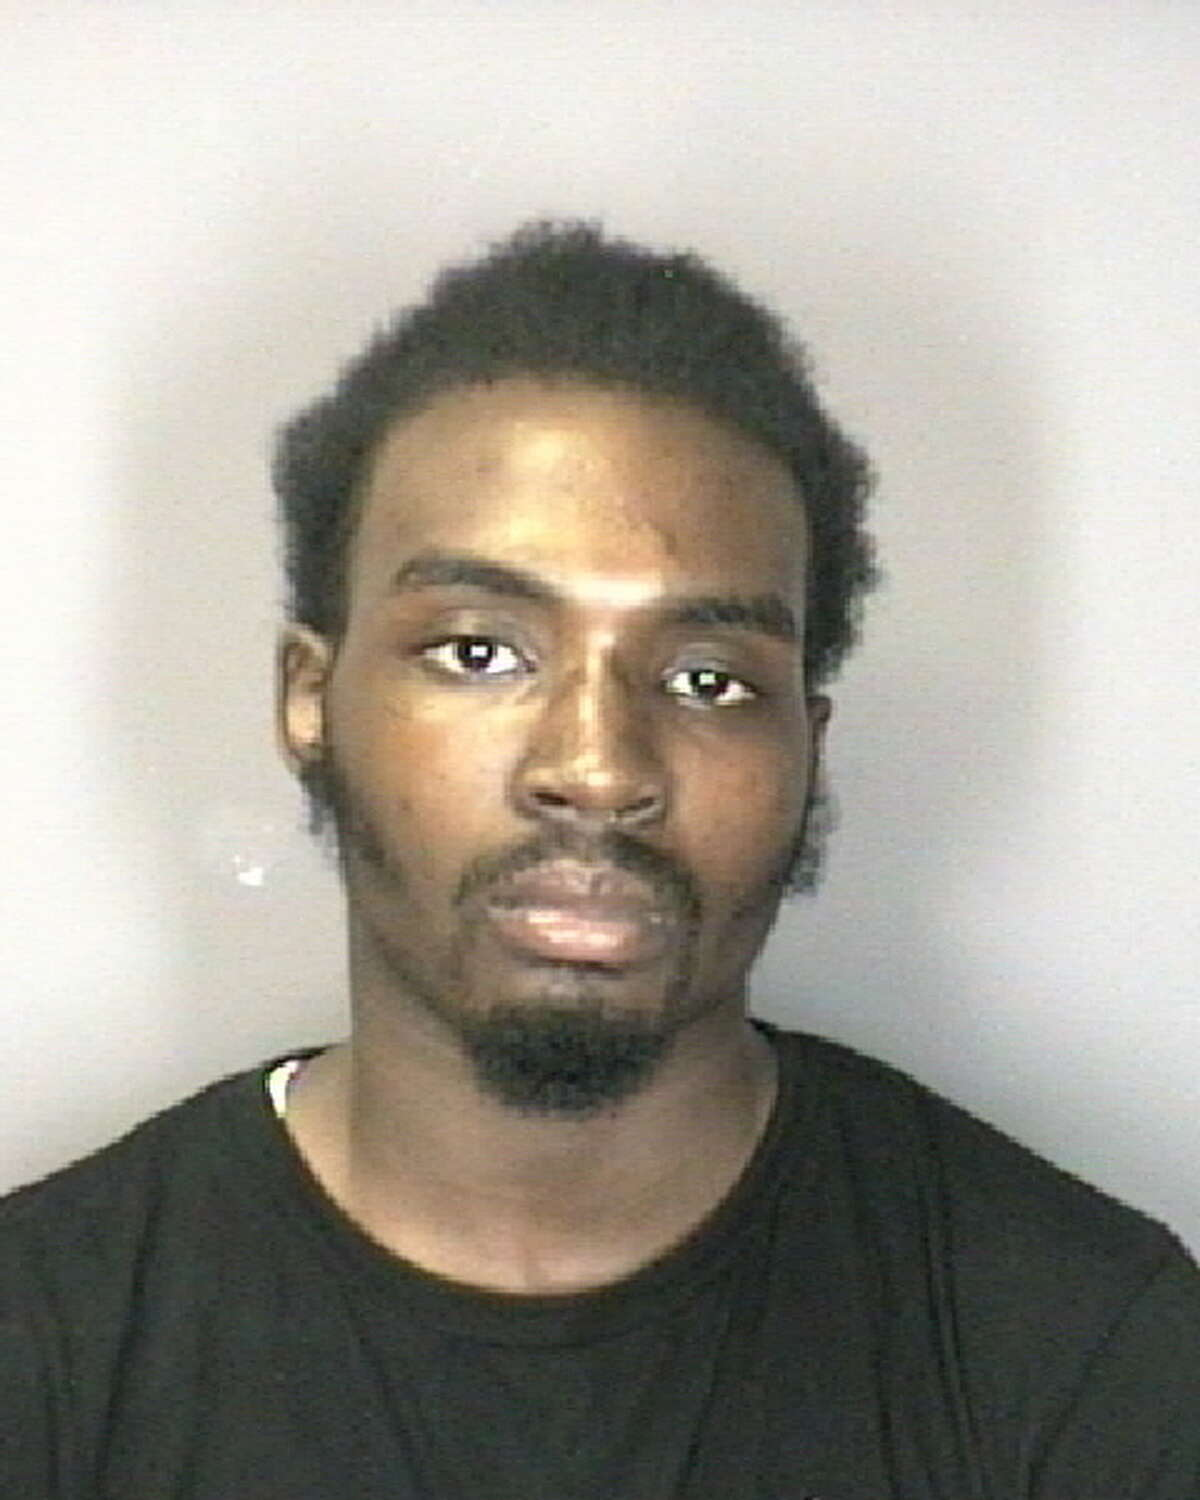 Khasier Allah, 17, was charged with two felonies after a traffic stop Sunday.